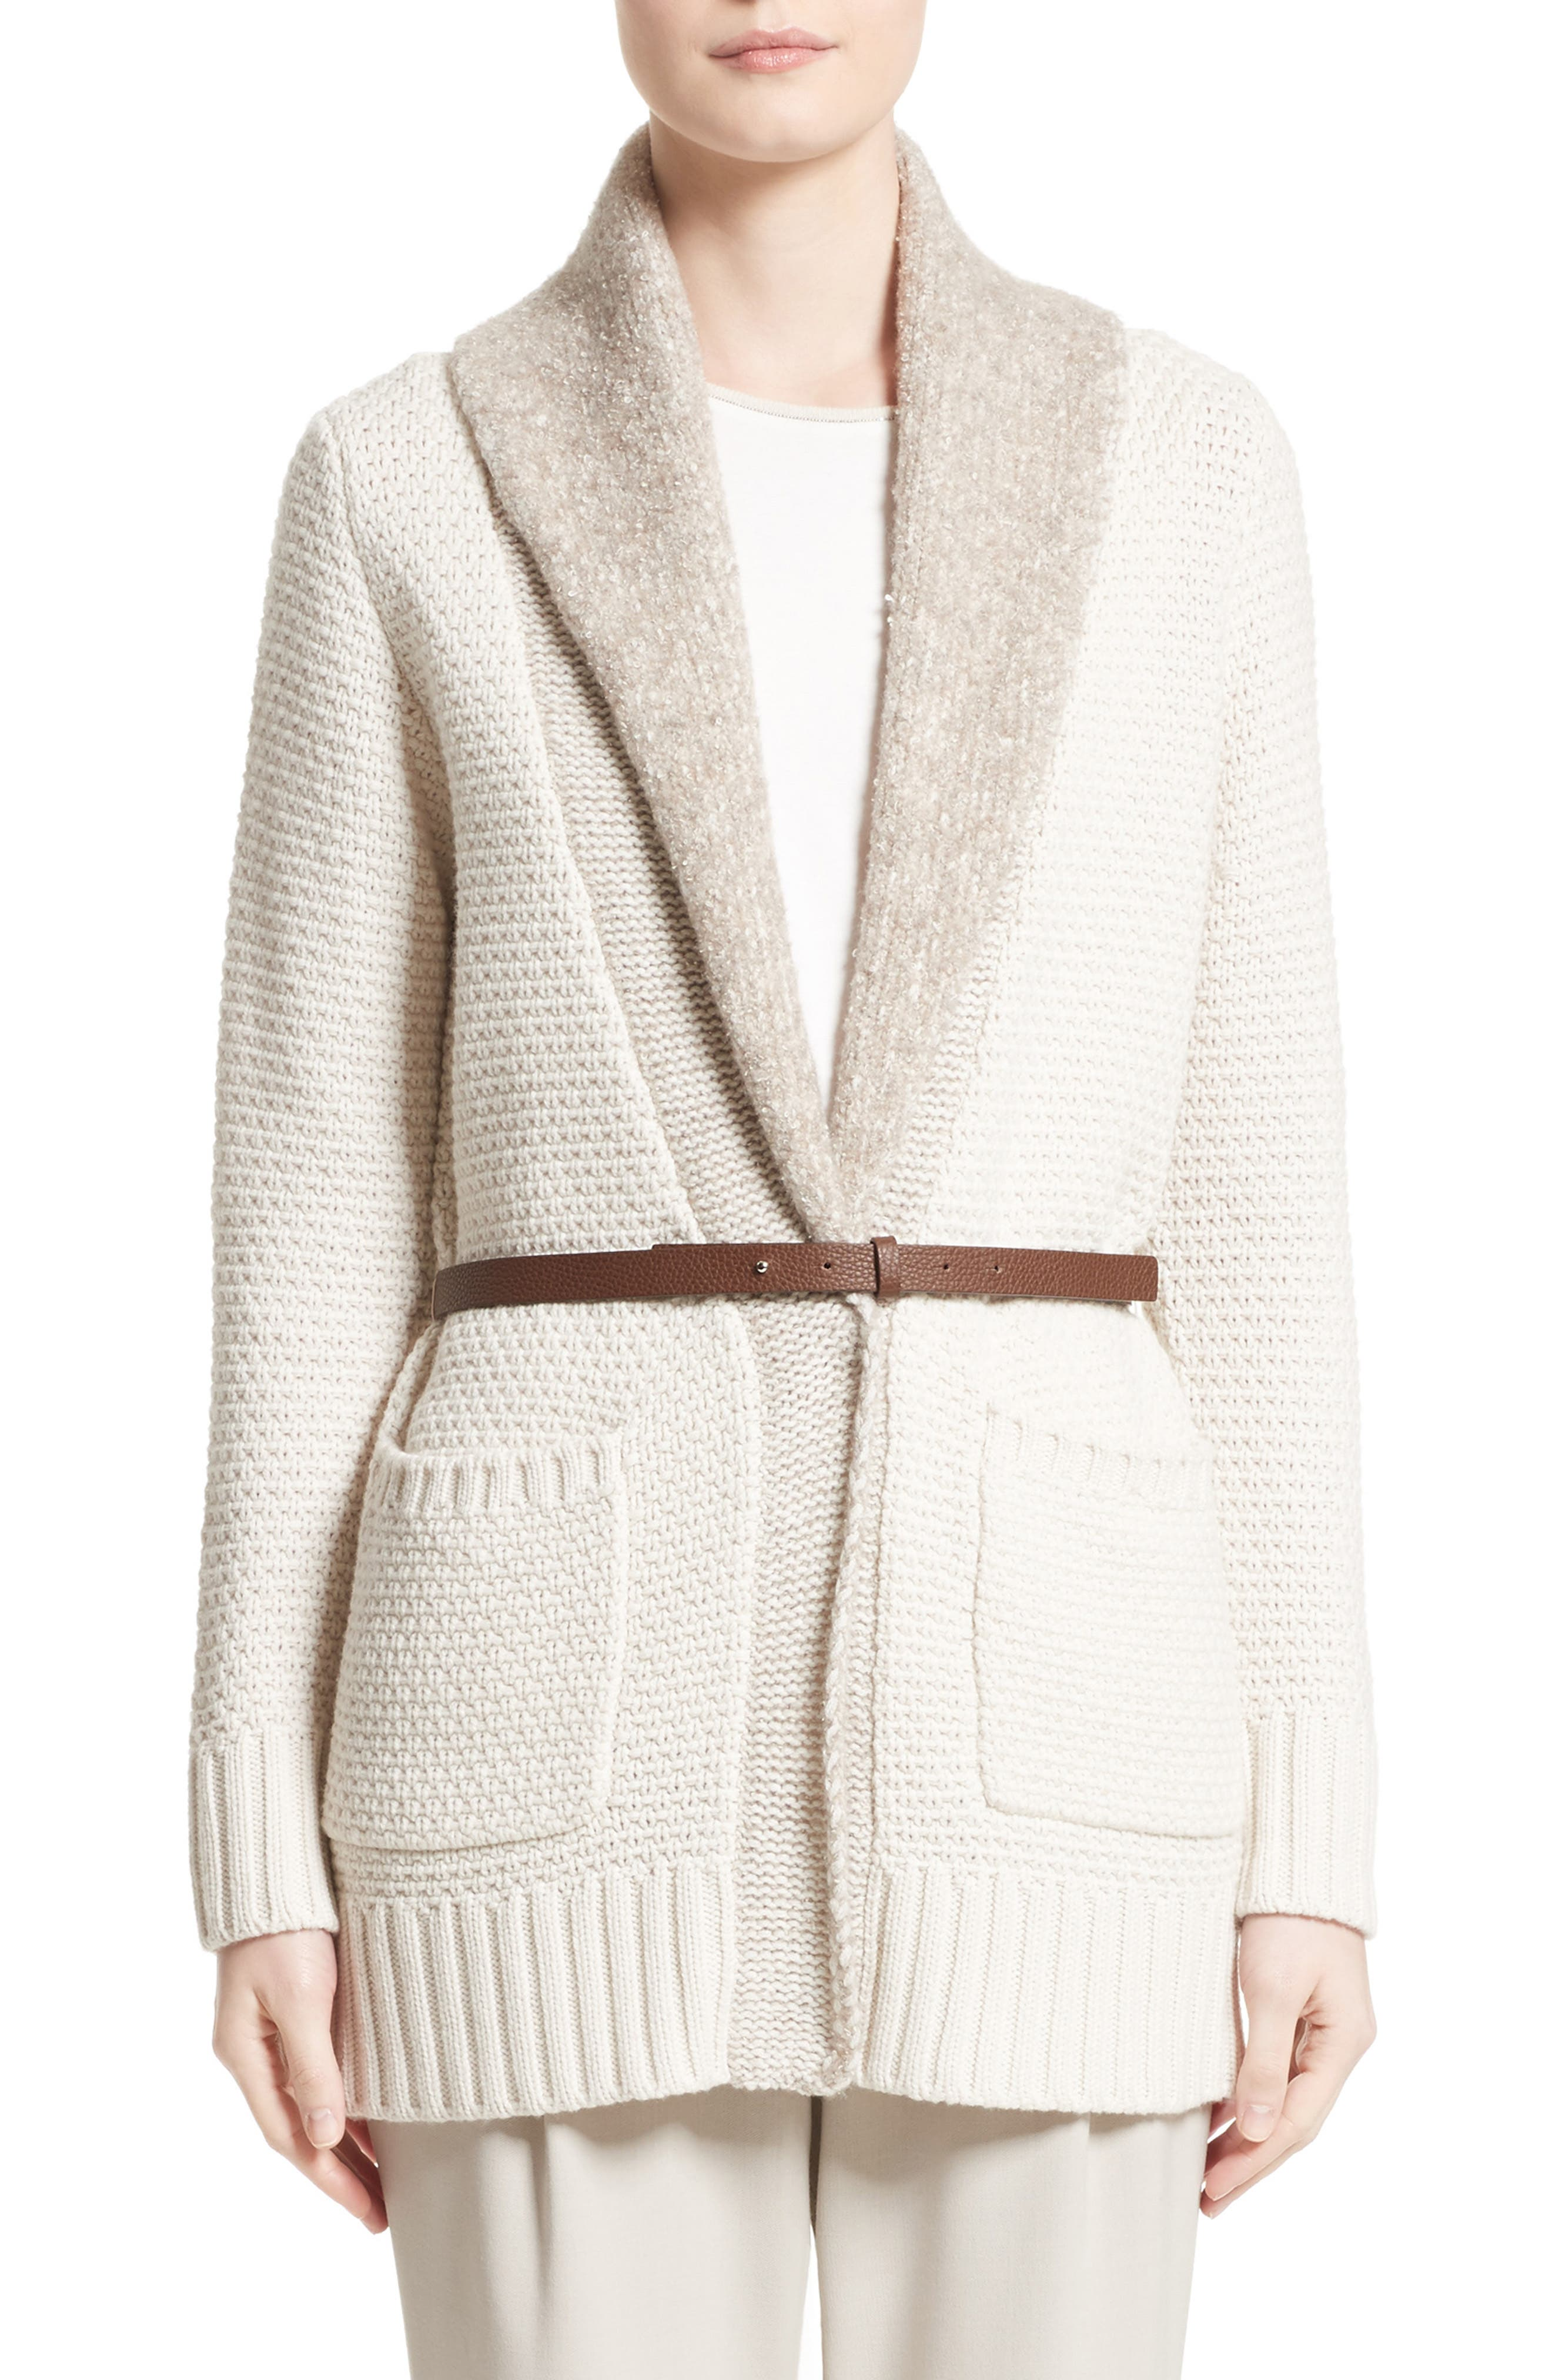 Wool, Silk & Cashmere Knit Cardigan,                         Main,                         color, 101